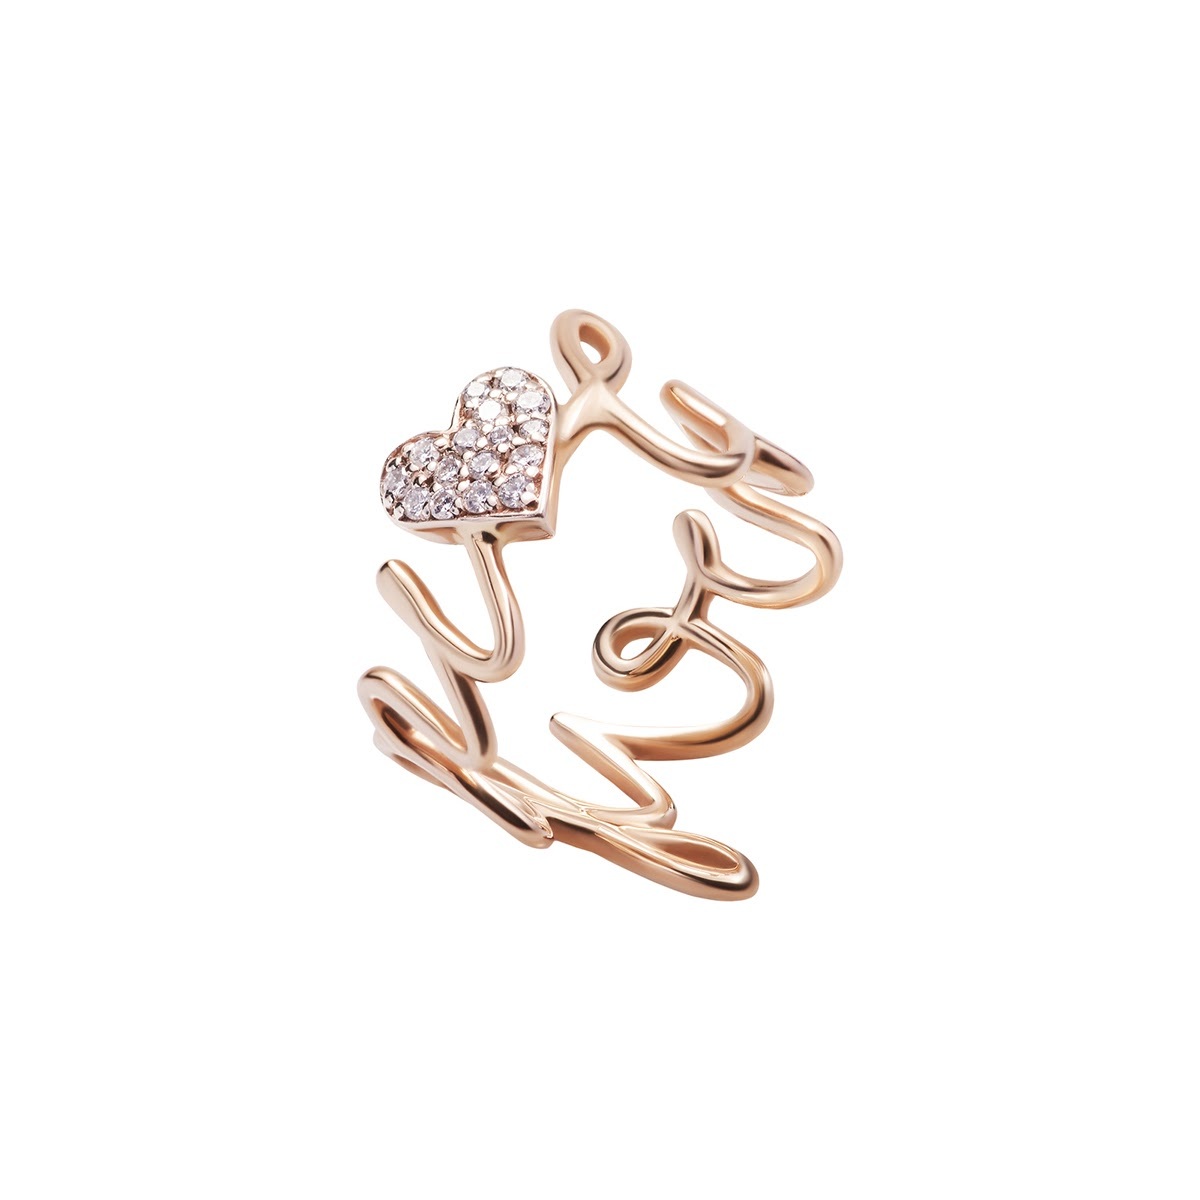 Love You Diamond Ring by Jewelry Lab on curated-crowd.com